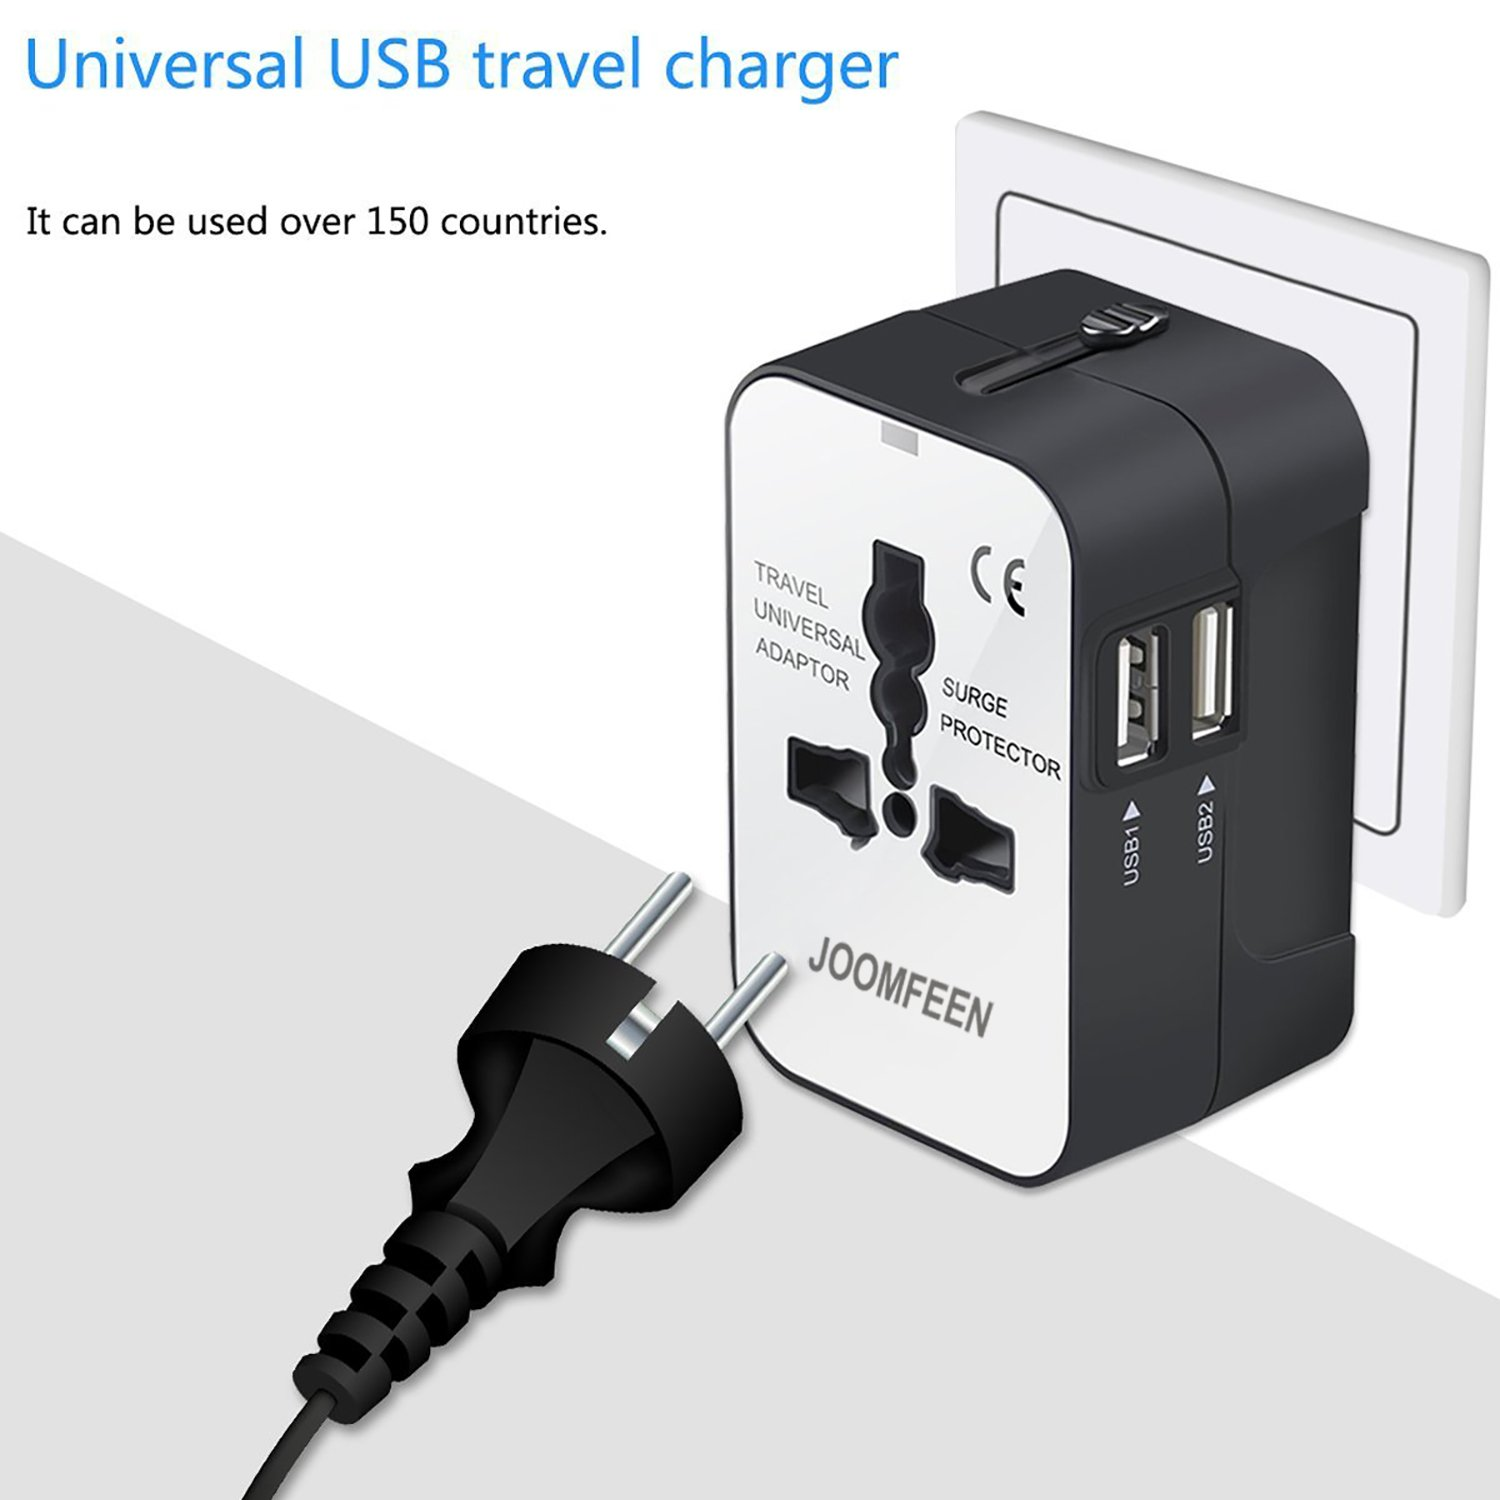 Black Travel Adapter JOOMFEEN Worldwide All in One Universal Power Converters Wall AC Power Plug Adapter Power Plug Wall Charger with Dual USB Charging Ports for USA EU UK AUS Cell Phone Laptop